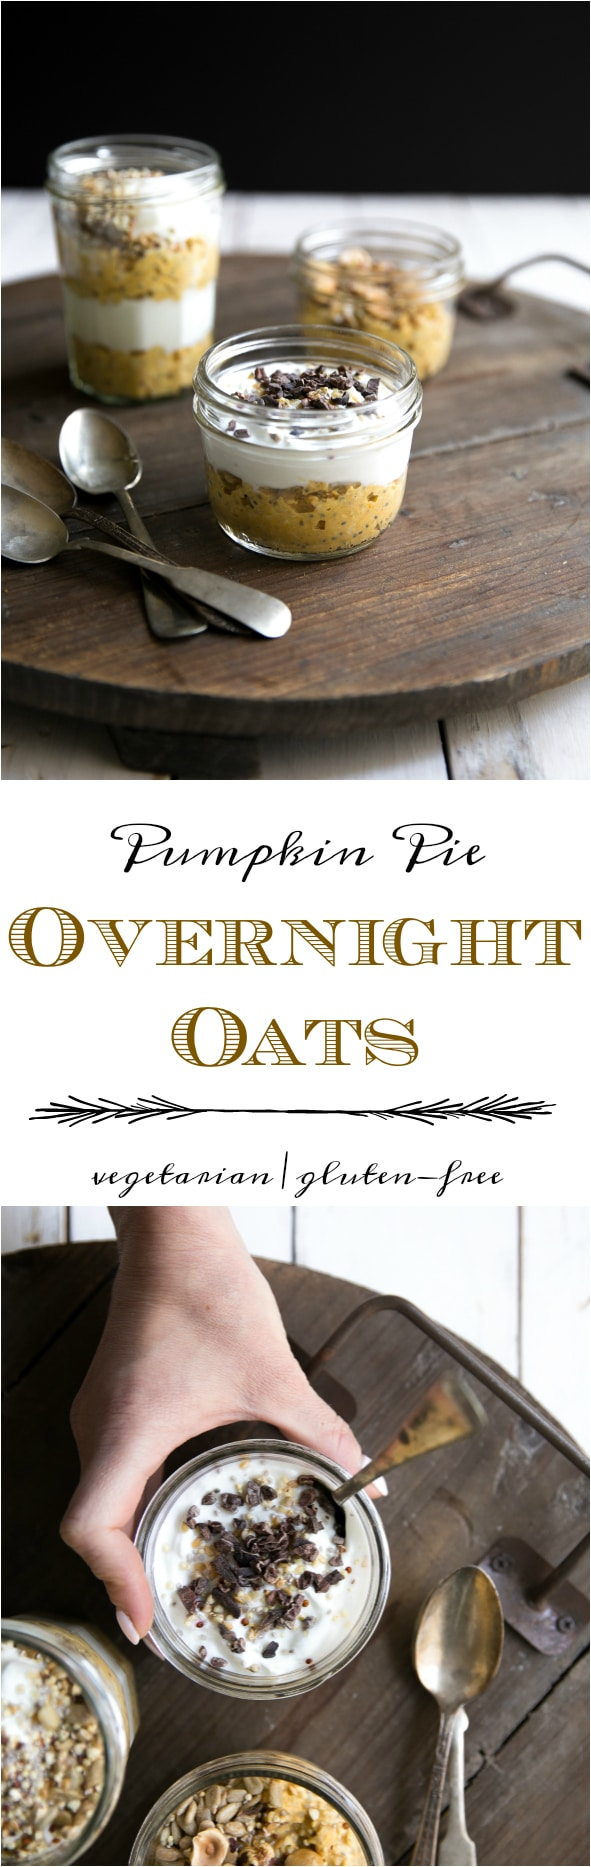 Just as delicious and WAY better for you, these Pumpkin Pie Overnight Oats are loaded with protein and taste just like the real deal. #pumpkin #pumpkinpie #thanksgiving #healthy #dessert #breakfast @theforkedspoon